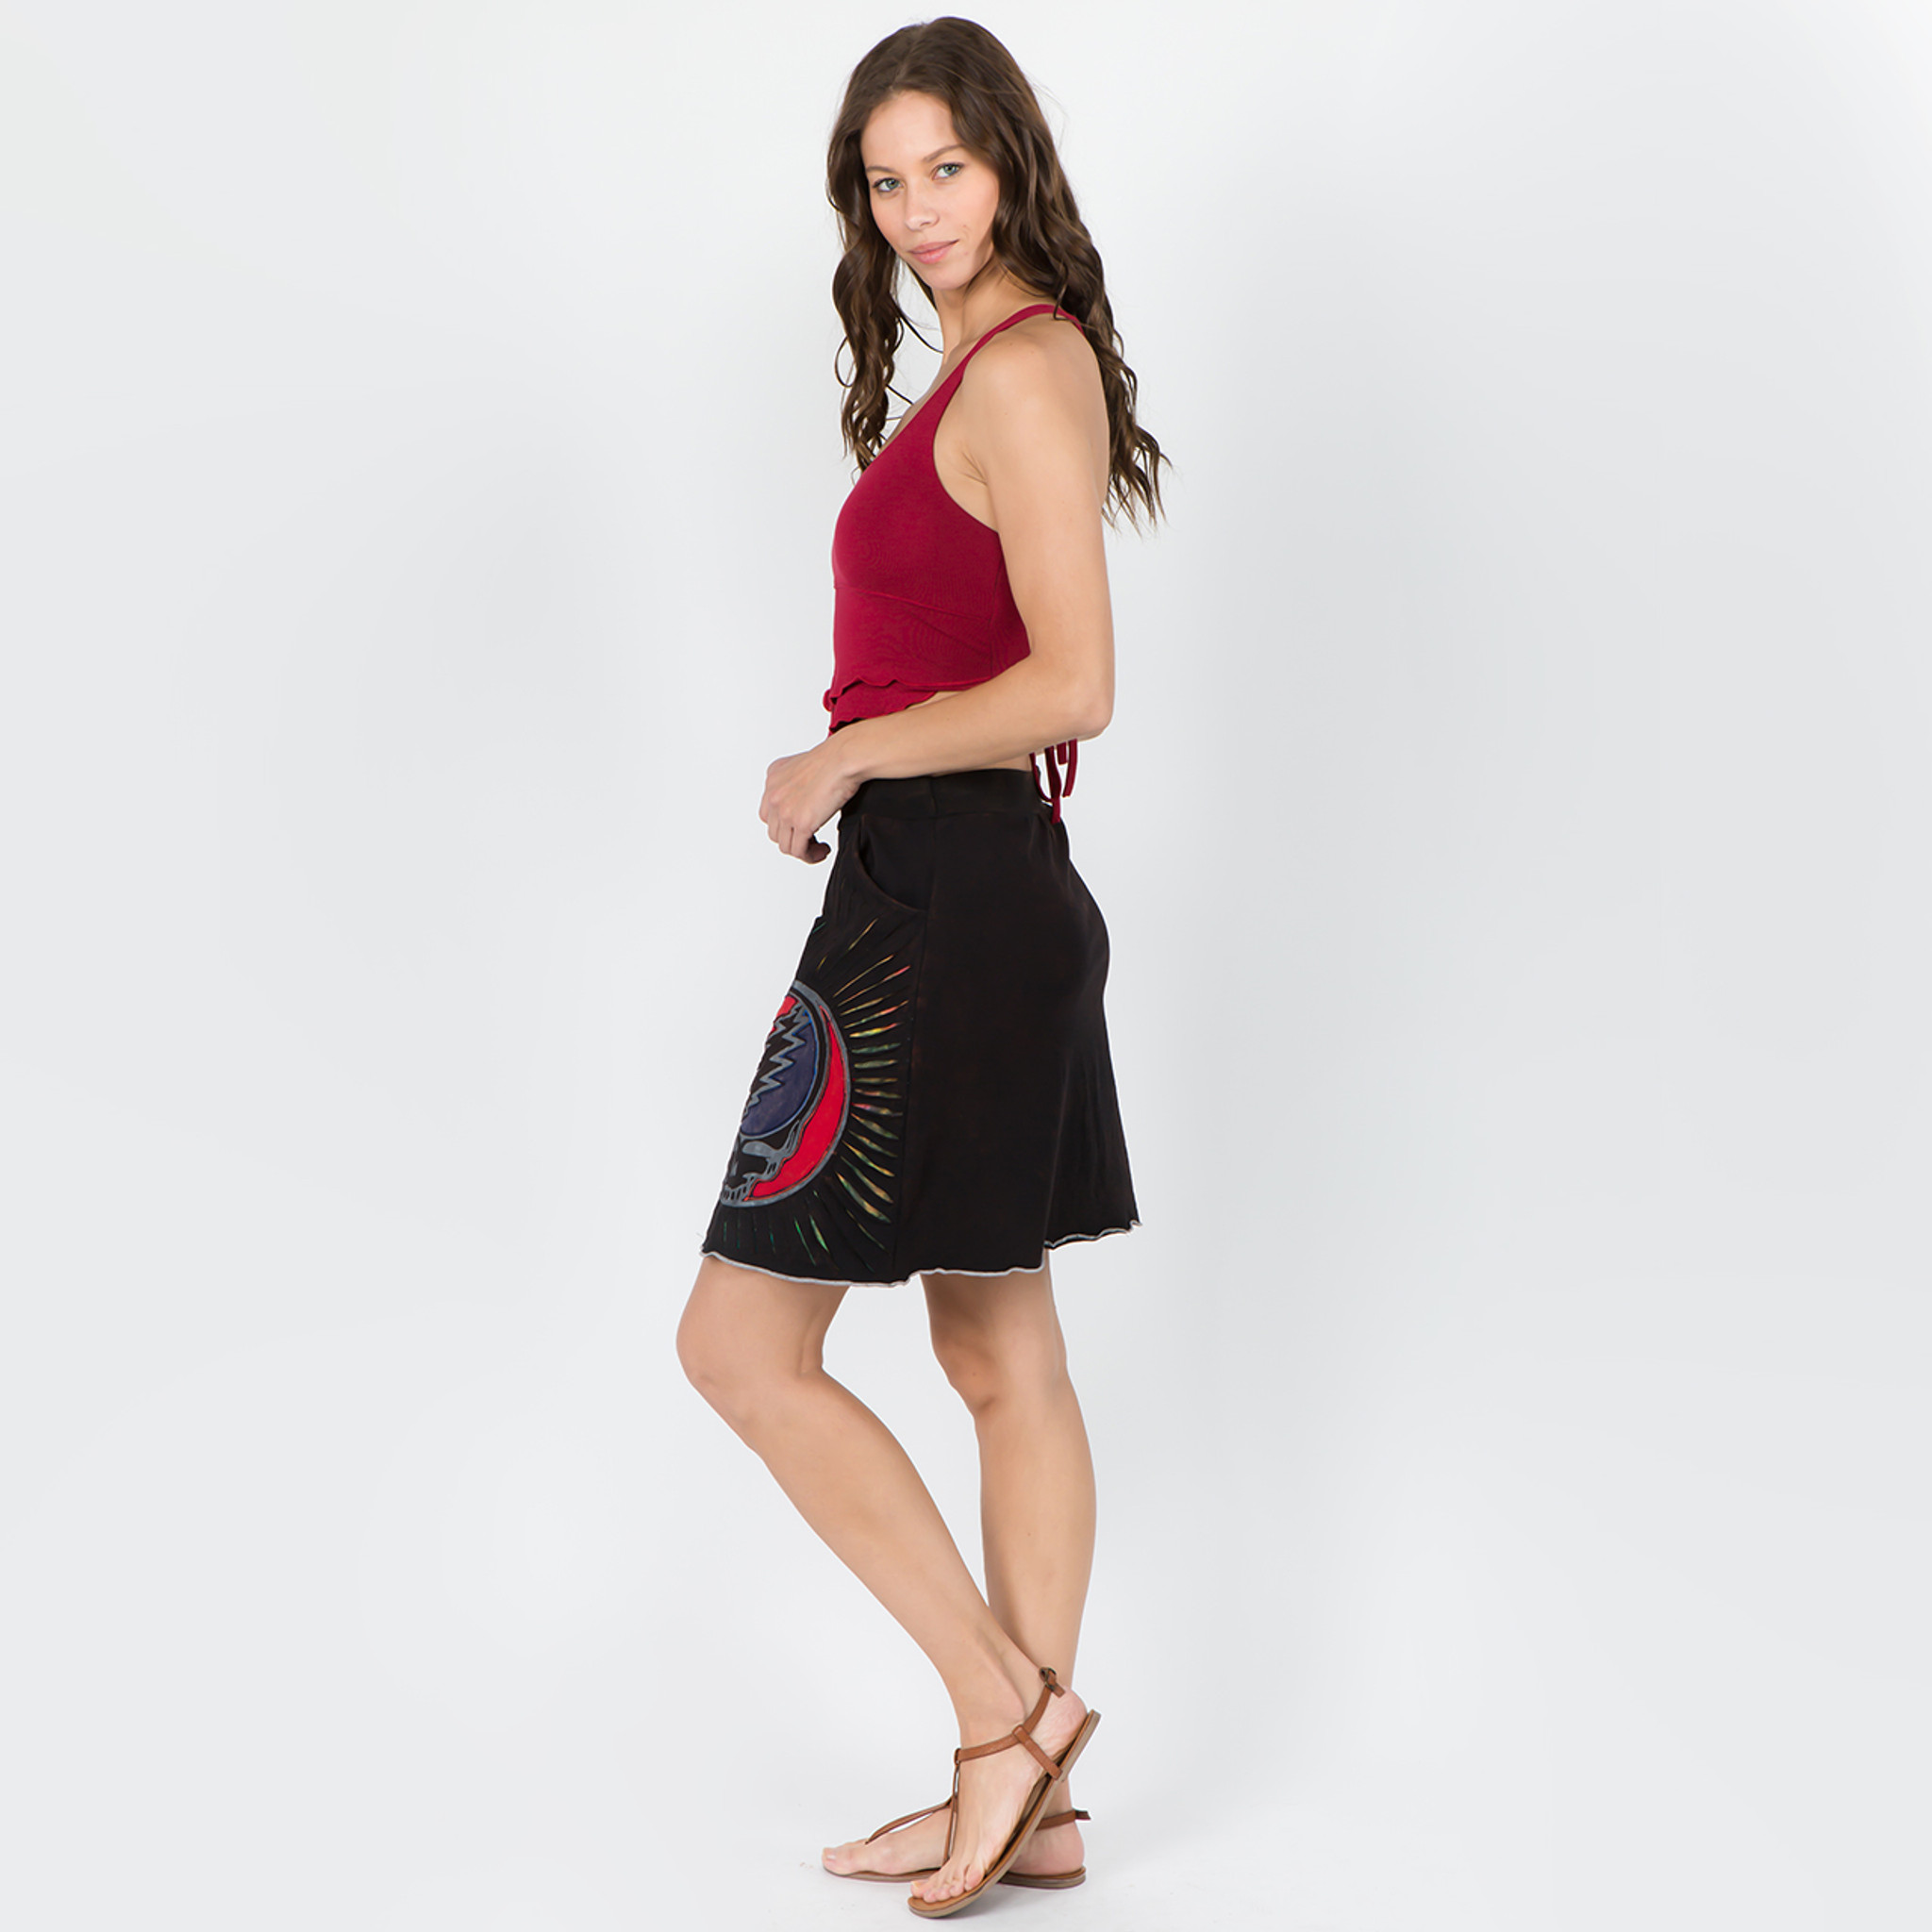 CHINA CAT SKIRT Cotton Razor Cut Grateful Dead Mini Skirt With Attached Pocket And SYF Applique-Black